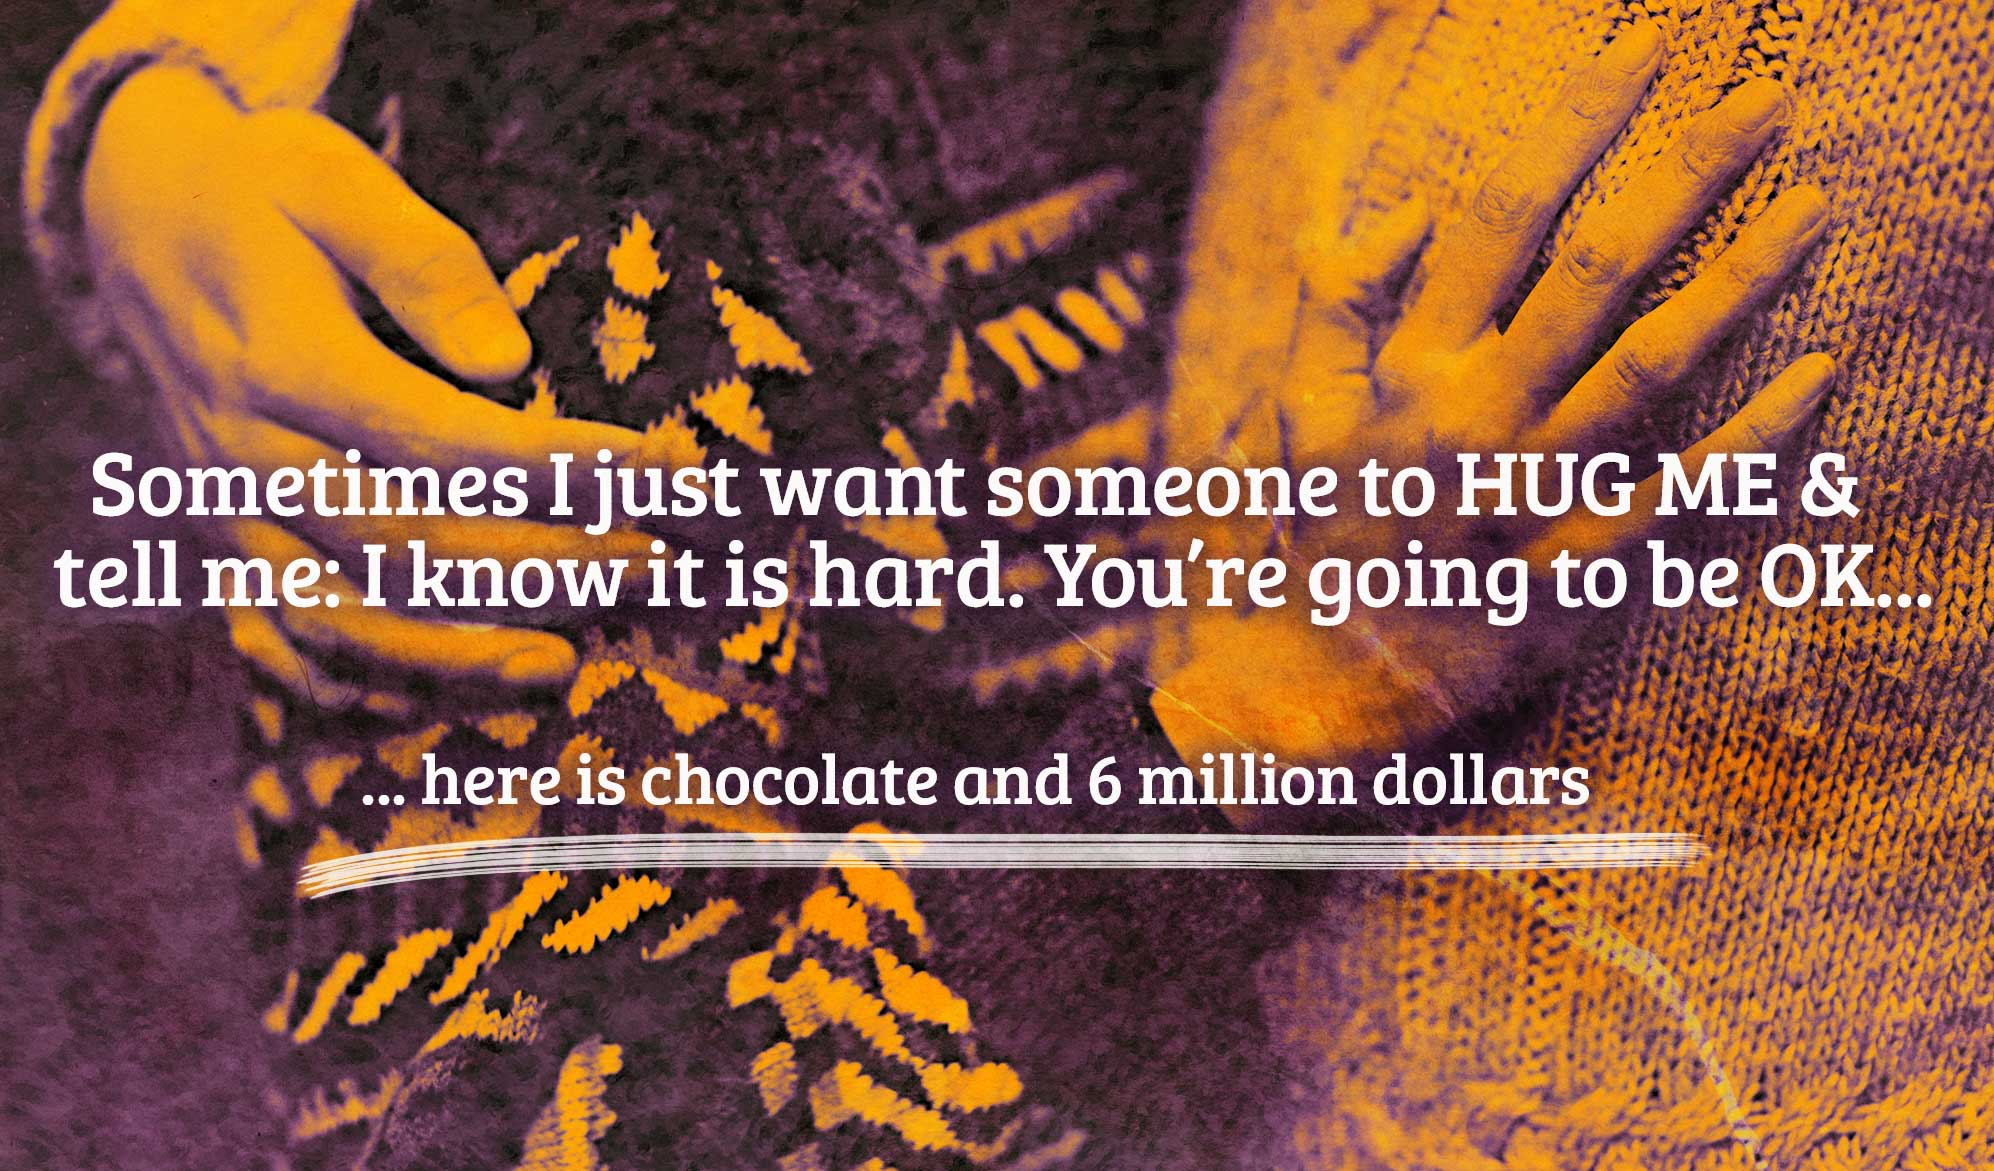 daily inspirational quote image: close up of 2 people hugging, tinted in orange and purple tones